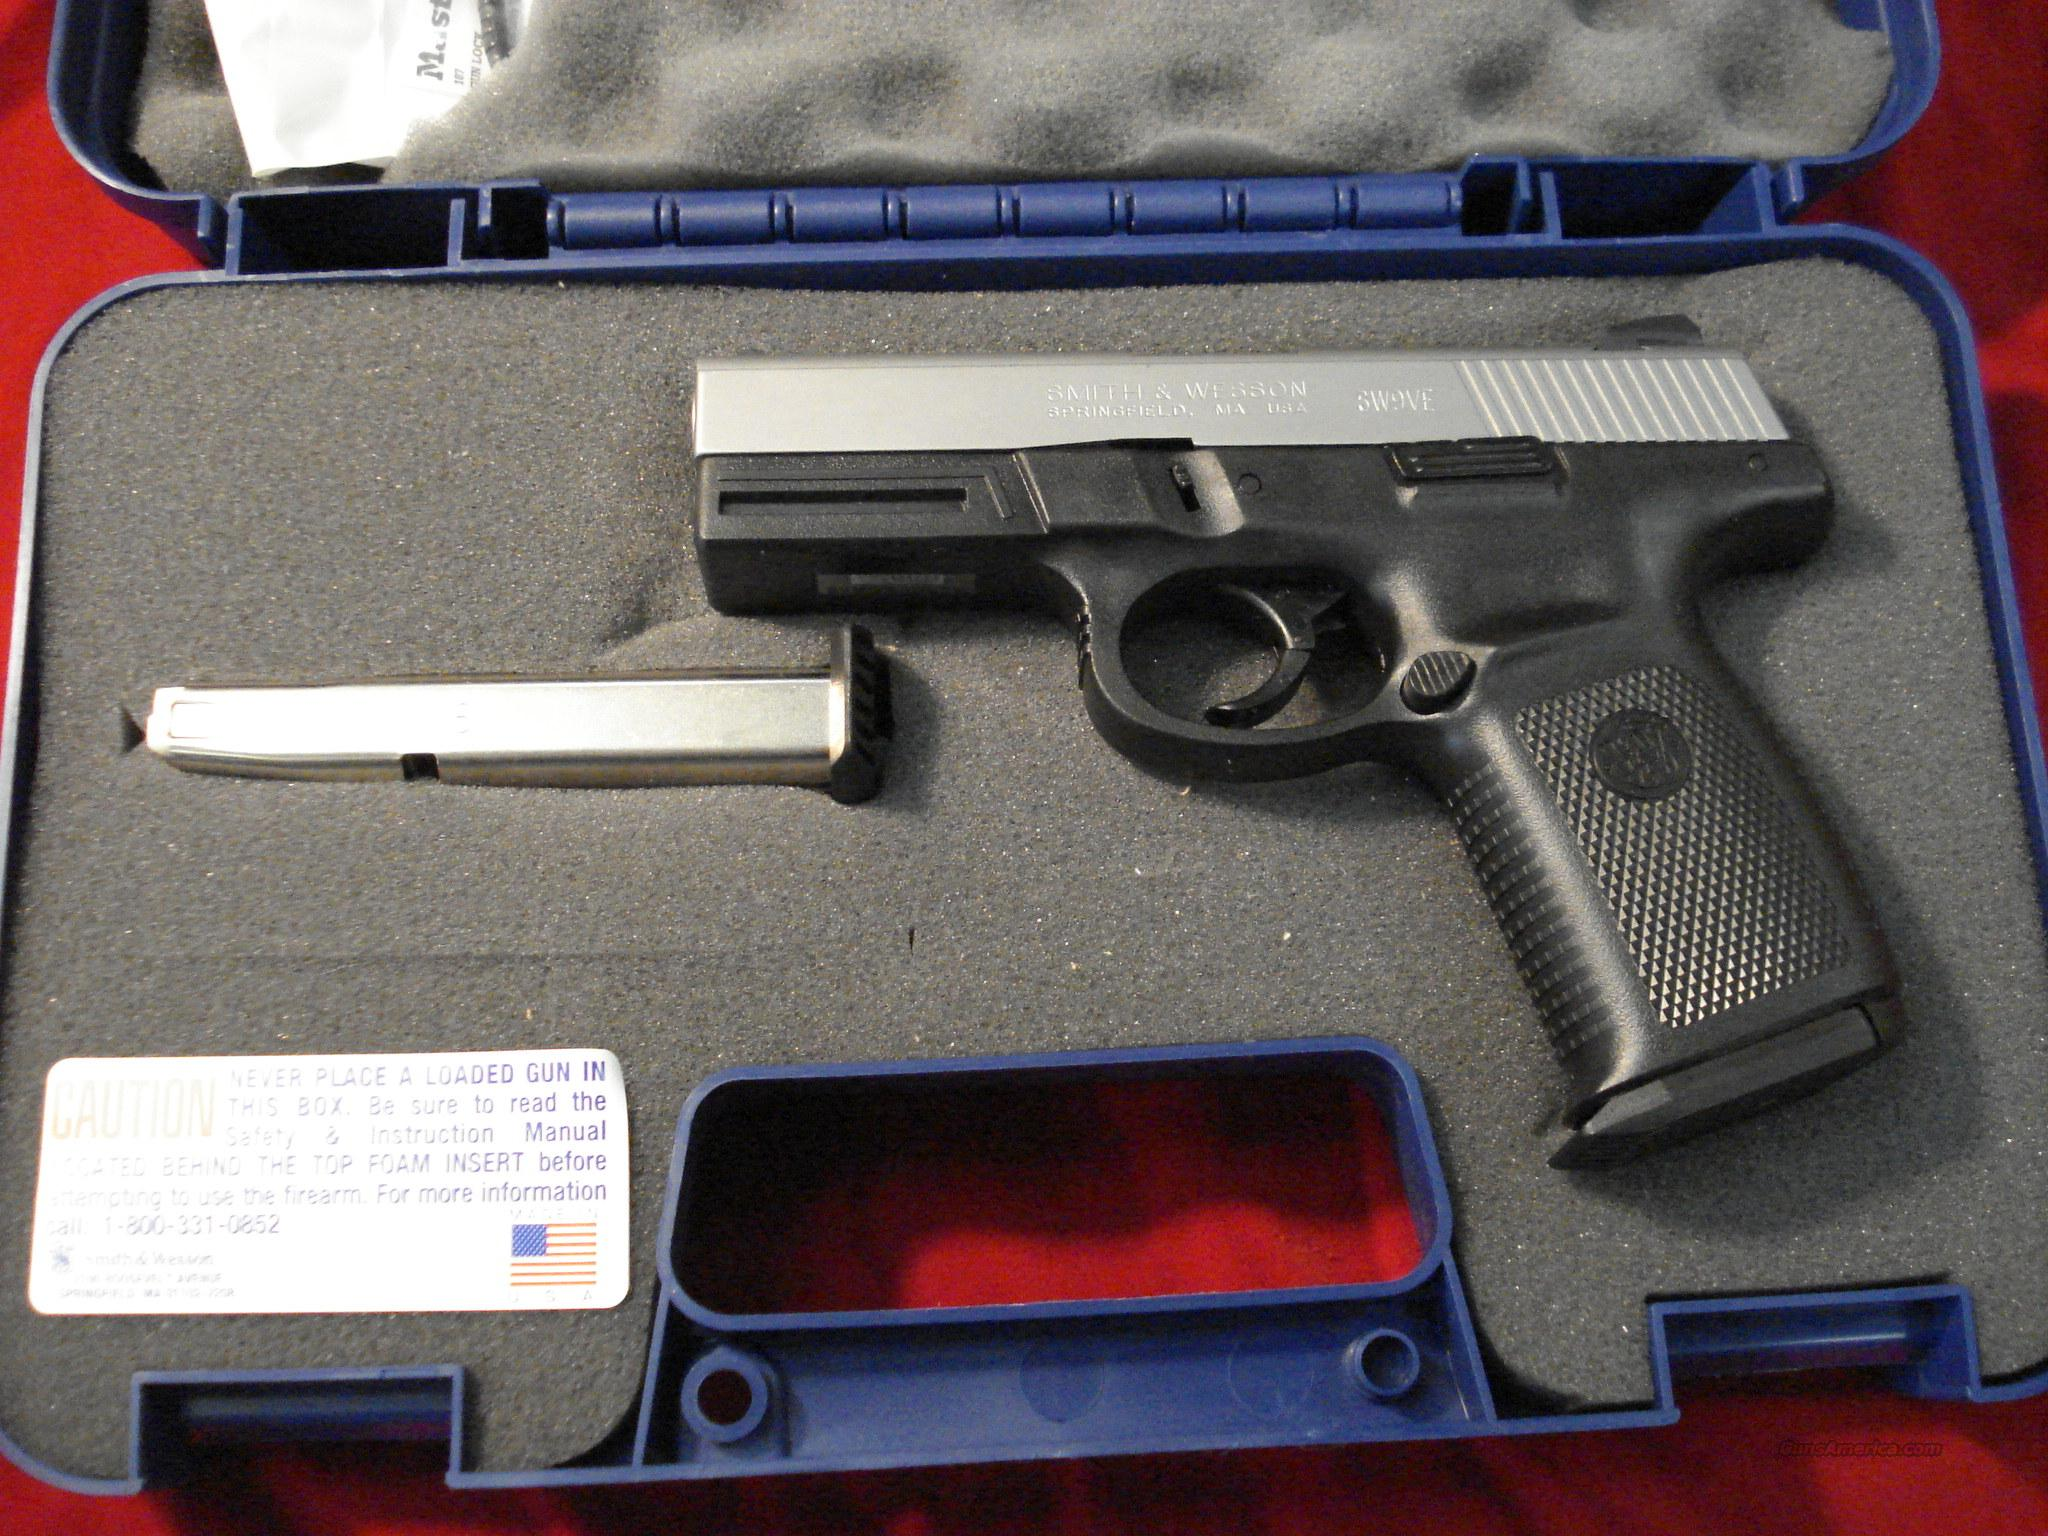 SMITH AND WESSON SIGMA STAINLESS 9MM HIGH CAP   Guns > Pistols > Smith & Wesson Pistols - Autos > Polymer Frame